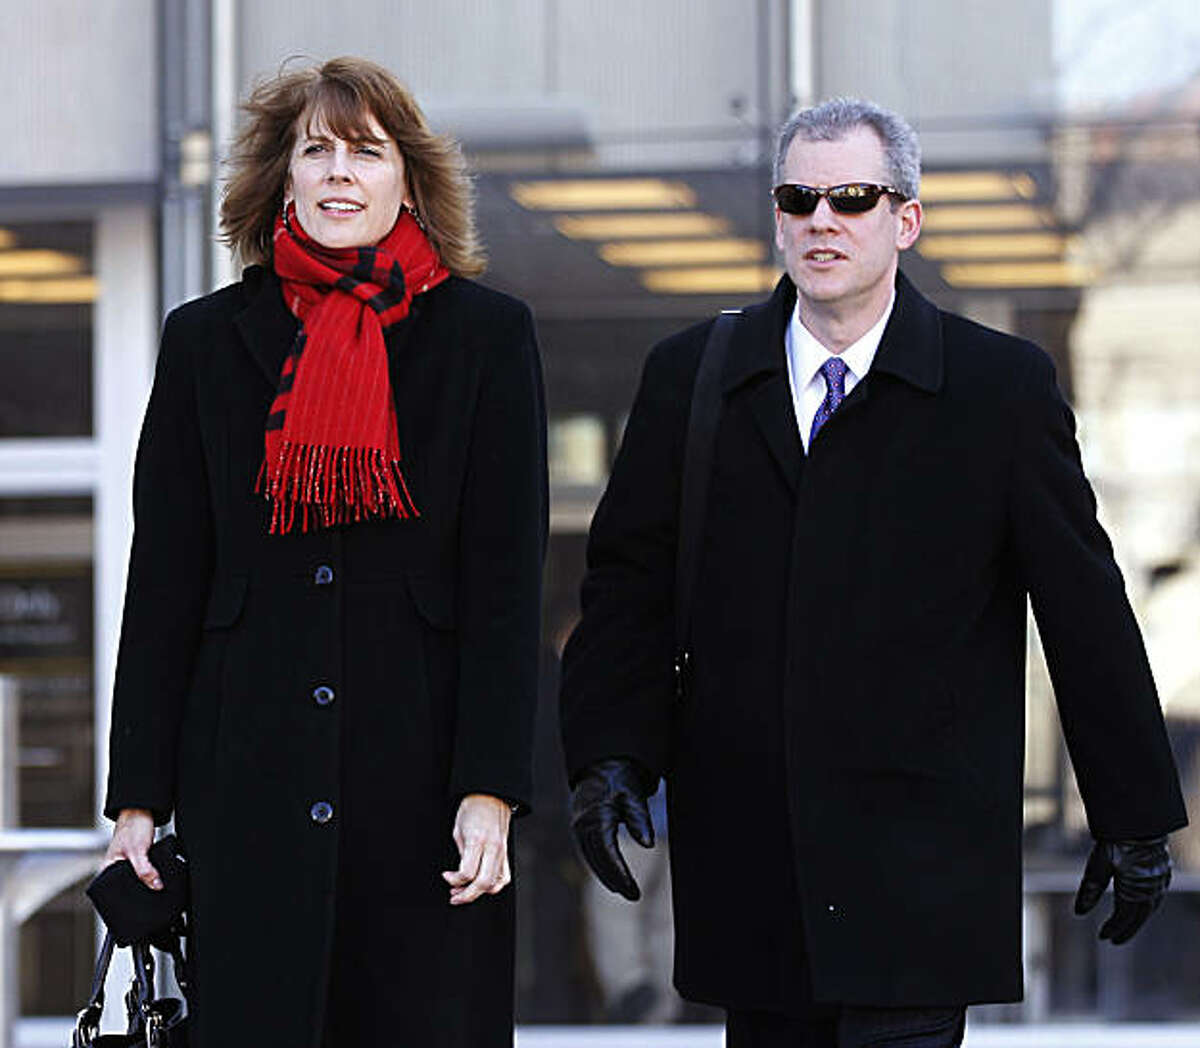 Amanda Haines, left, and Fernando Campo Amor, prosecutors in the murder case of Washington intern Chandra Levy, leave the District of Columbia Superior Court in Washington, Friday, Feb. 11, 2011. Ingmar Guandique, the man convicted of killing Washingtonintern Chandra Levy nearly a decade ago, was sentenced Friday to 60 years in prison.